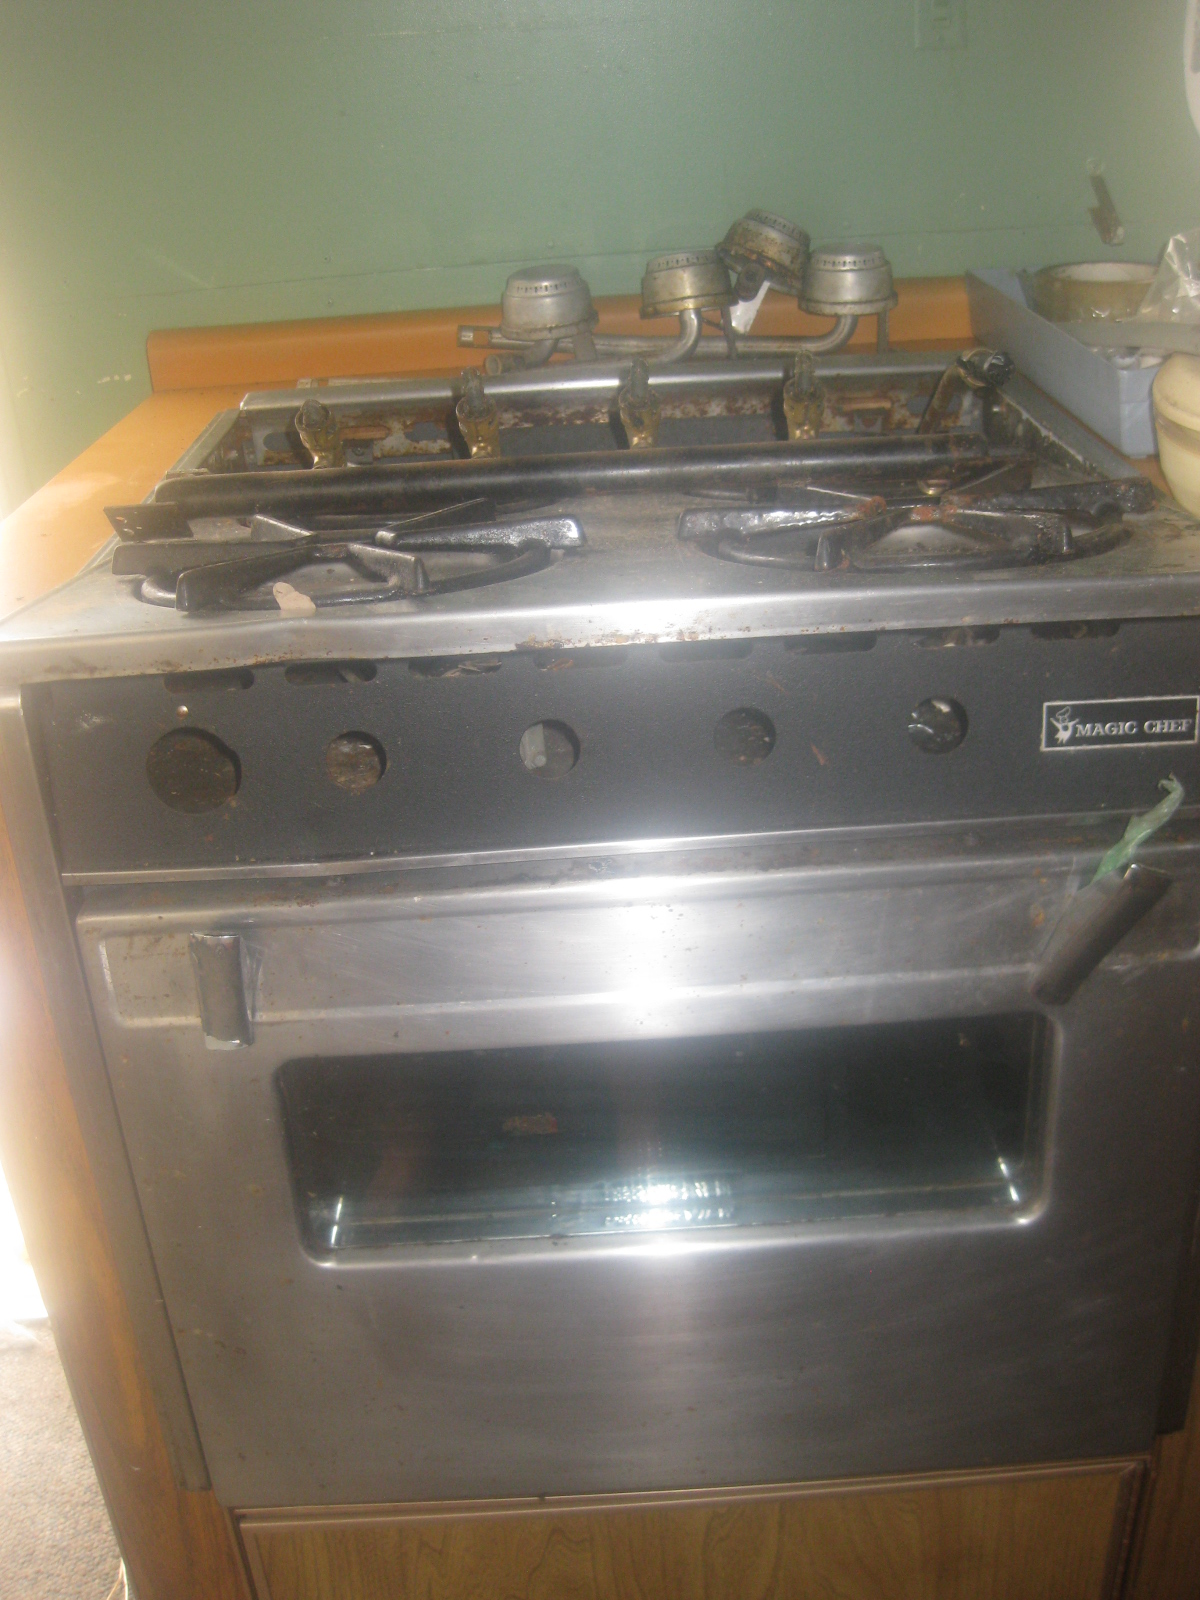 Click image for larger version  Name:Magic Chef 4 Burner Oven.JPG Views:693 Size:786.4 KB ID:131760